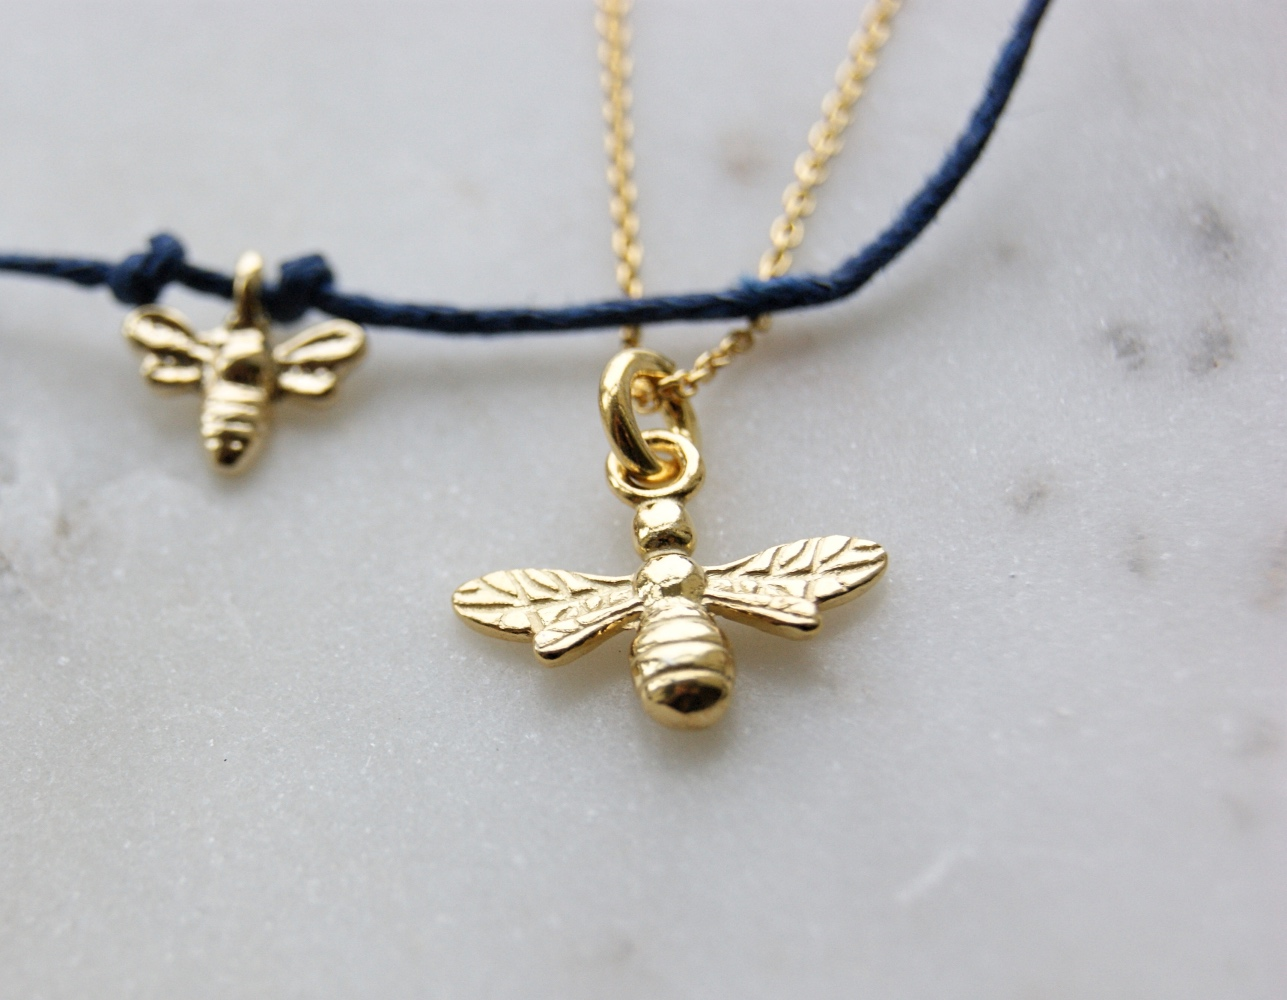 sterling co necklace bumble gold bee silver vermeil with pendant jewellery intricate uk details amazon plated l dp